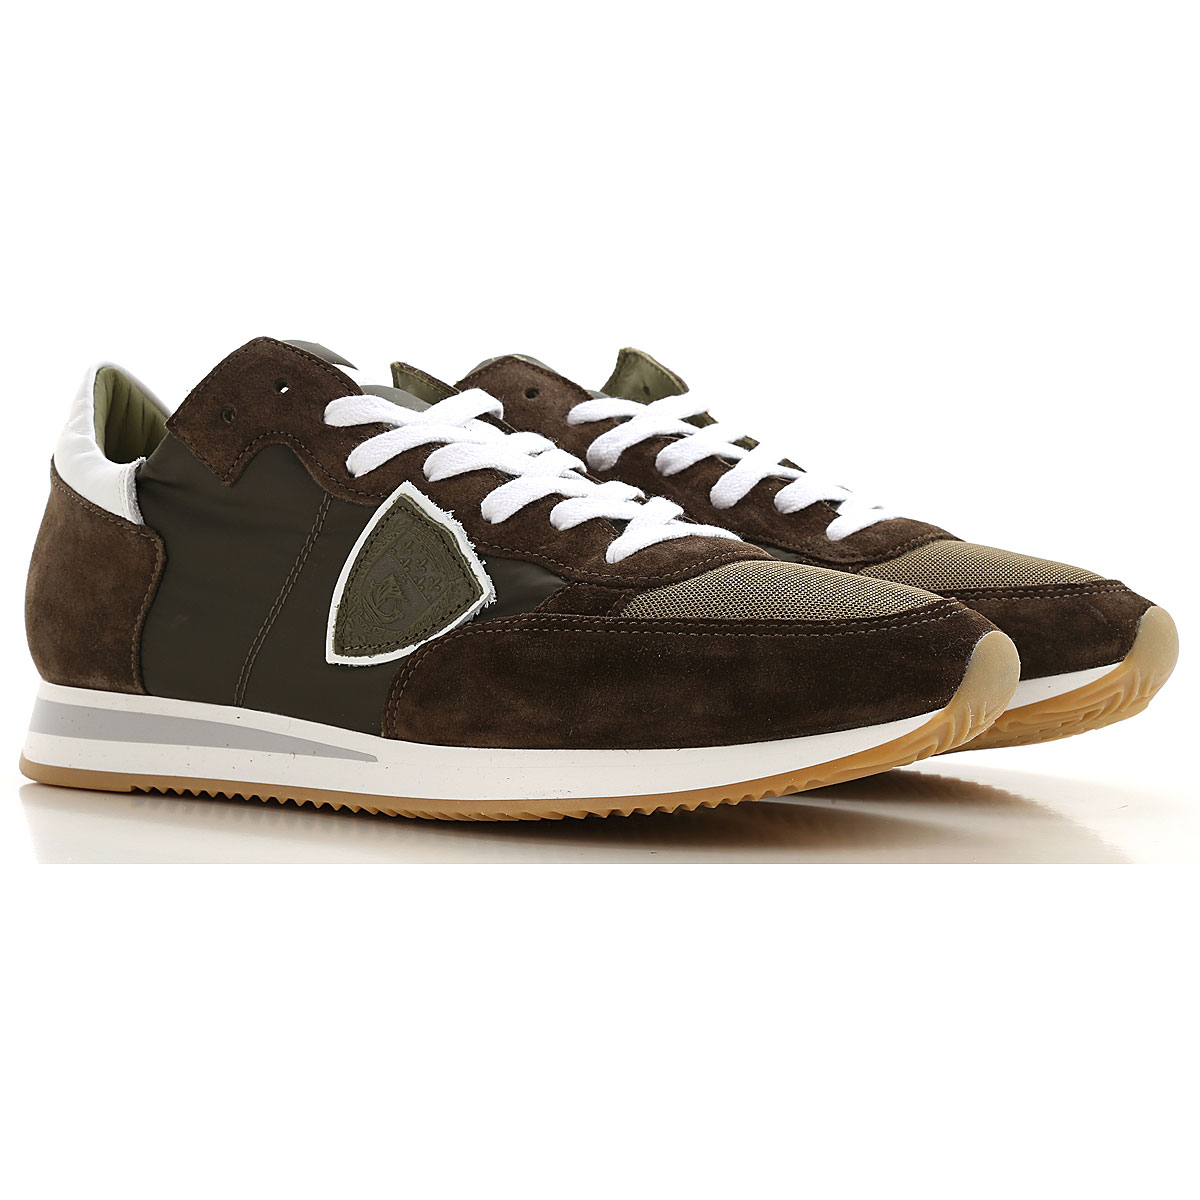 Philippe Model Sneakers for Men On Sale Military Green SE - GOOFASH